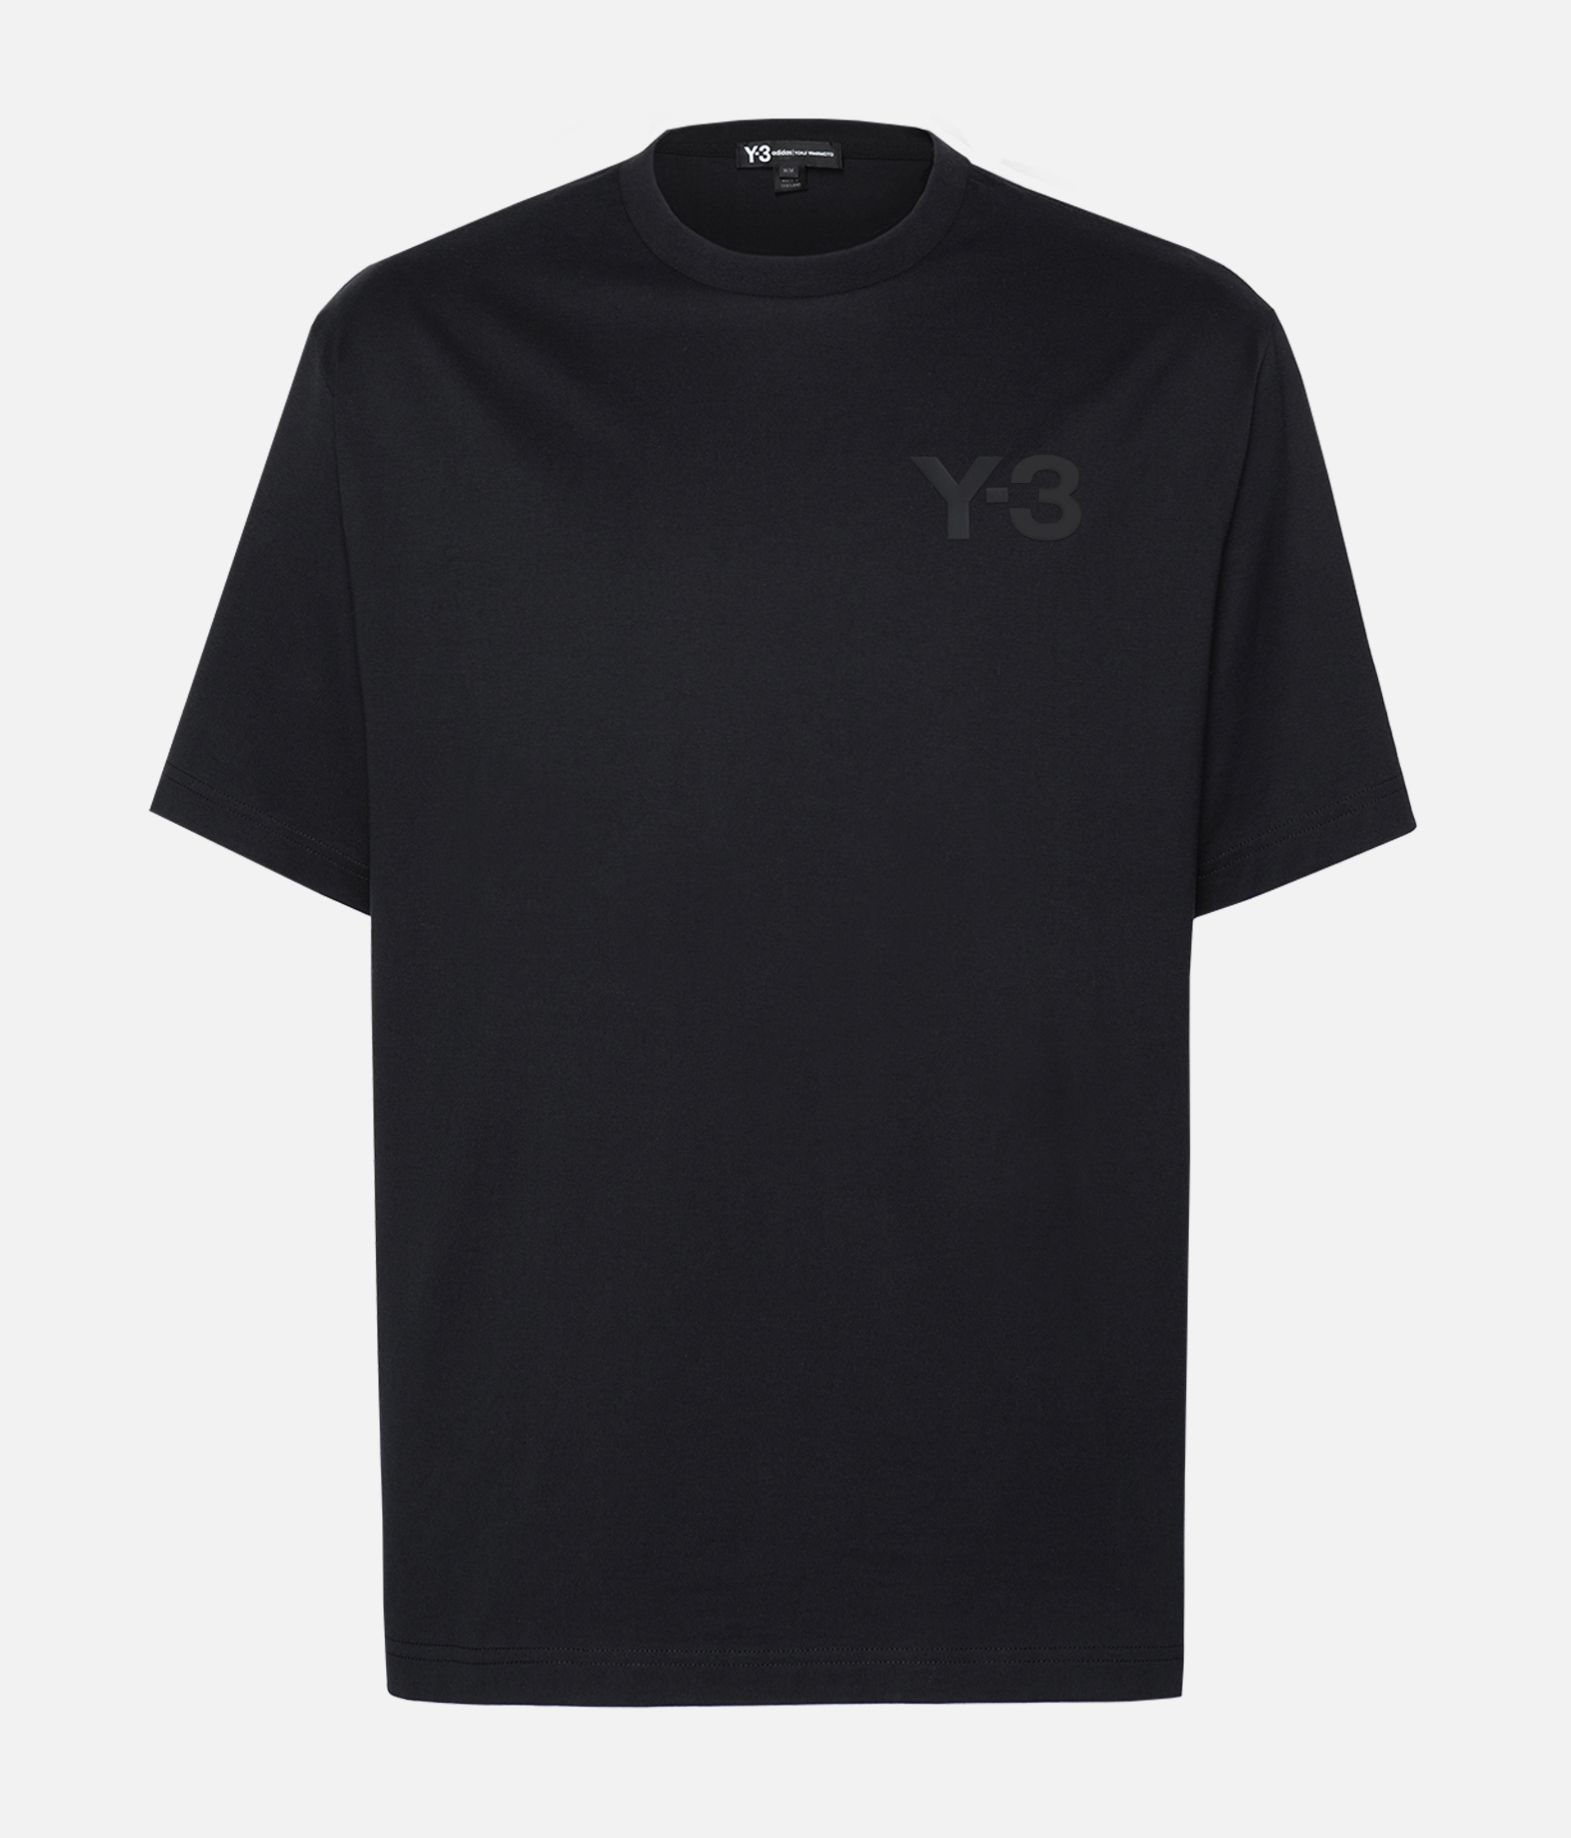 Y-3 Y-3 Logo Tee Short sleeve t-shirt Man f